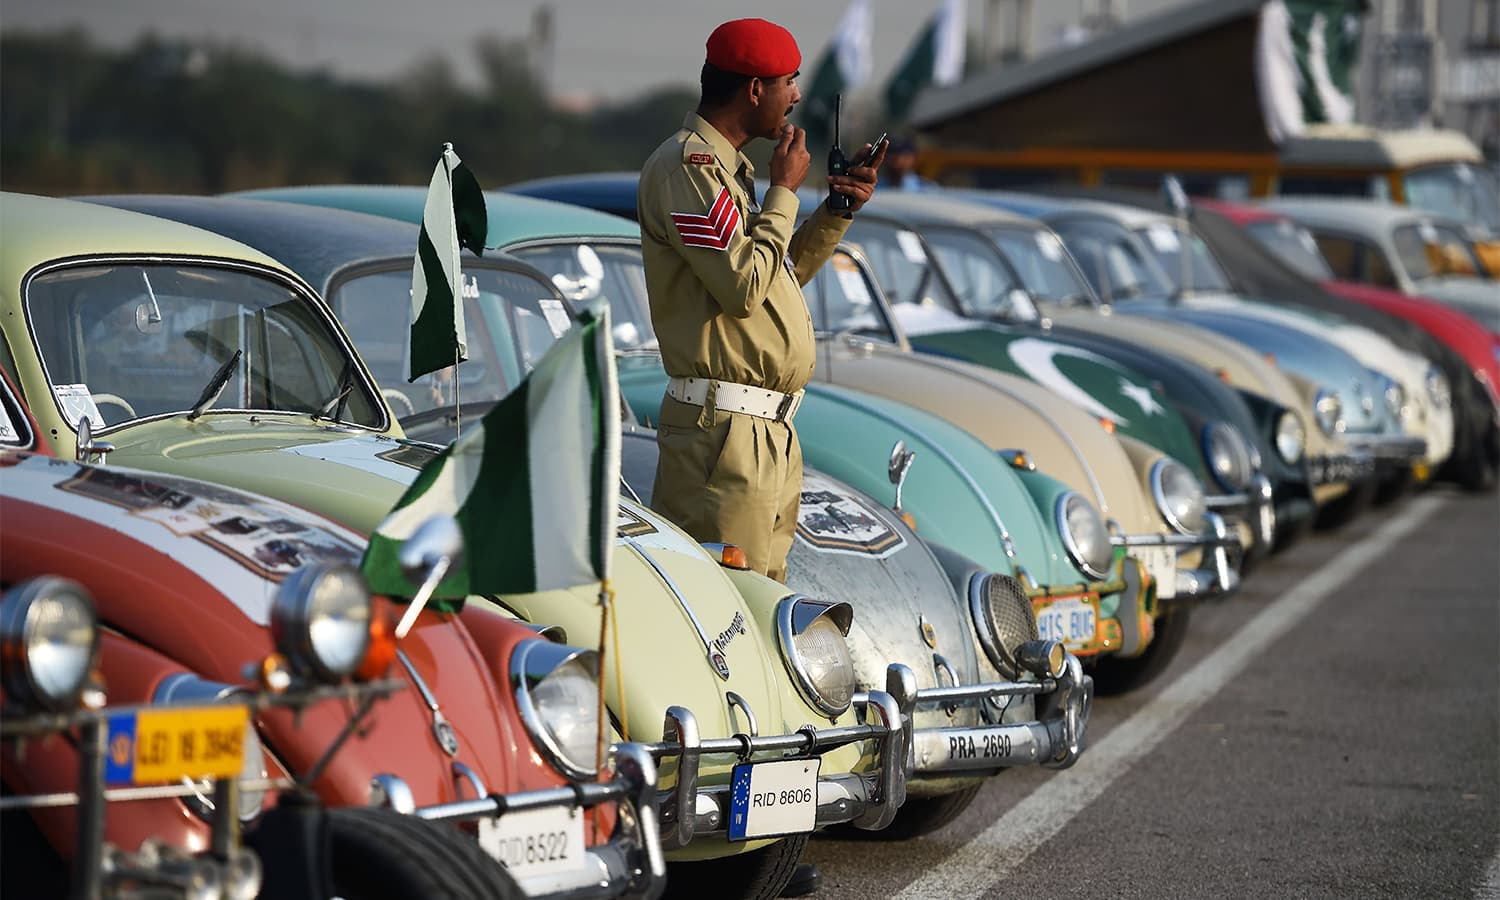 A Pakistan Army personnel looks at his moustache in a mirror next to vintage cars at the end of Motor Rally in Islamabad on October 23.— AFP